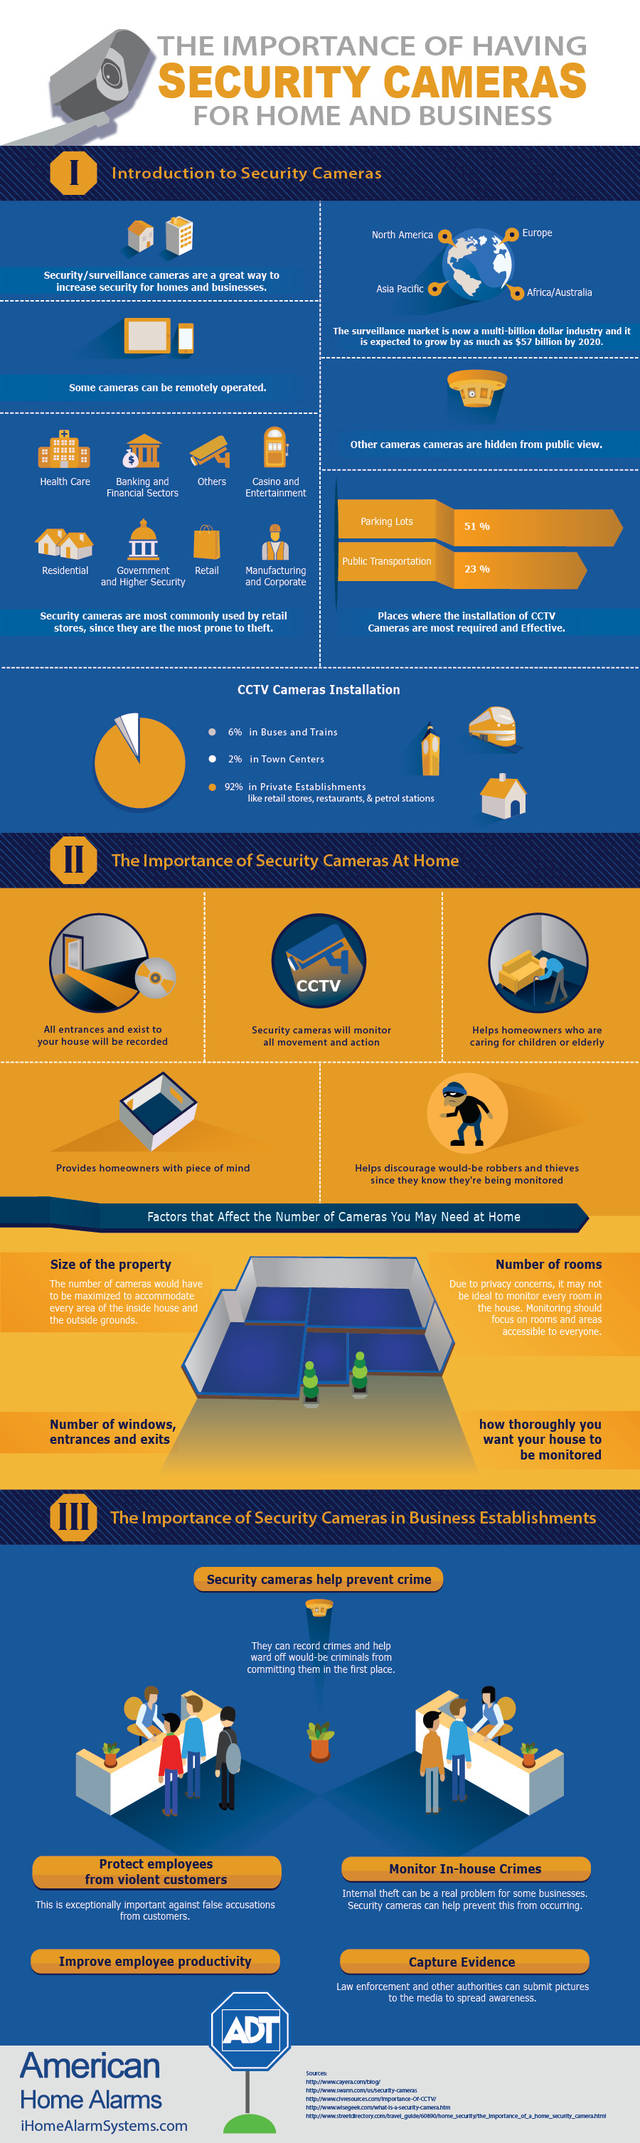 Security camera infographic